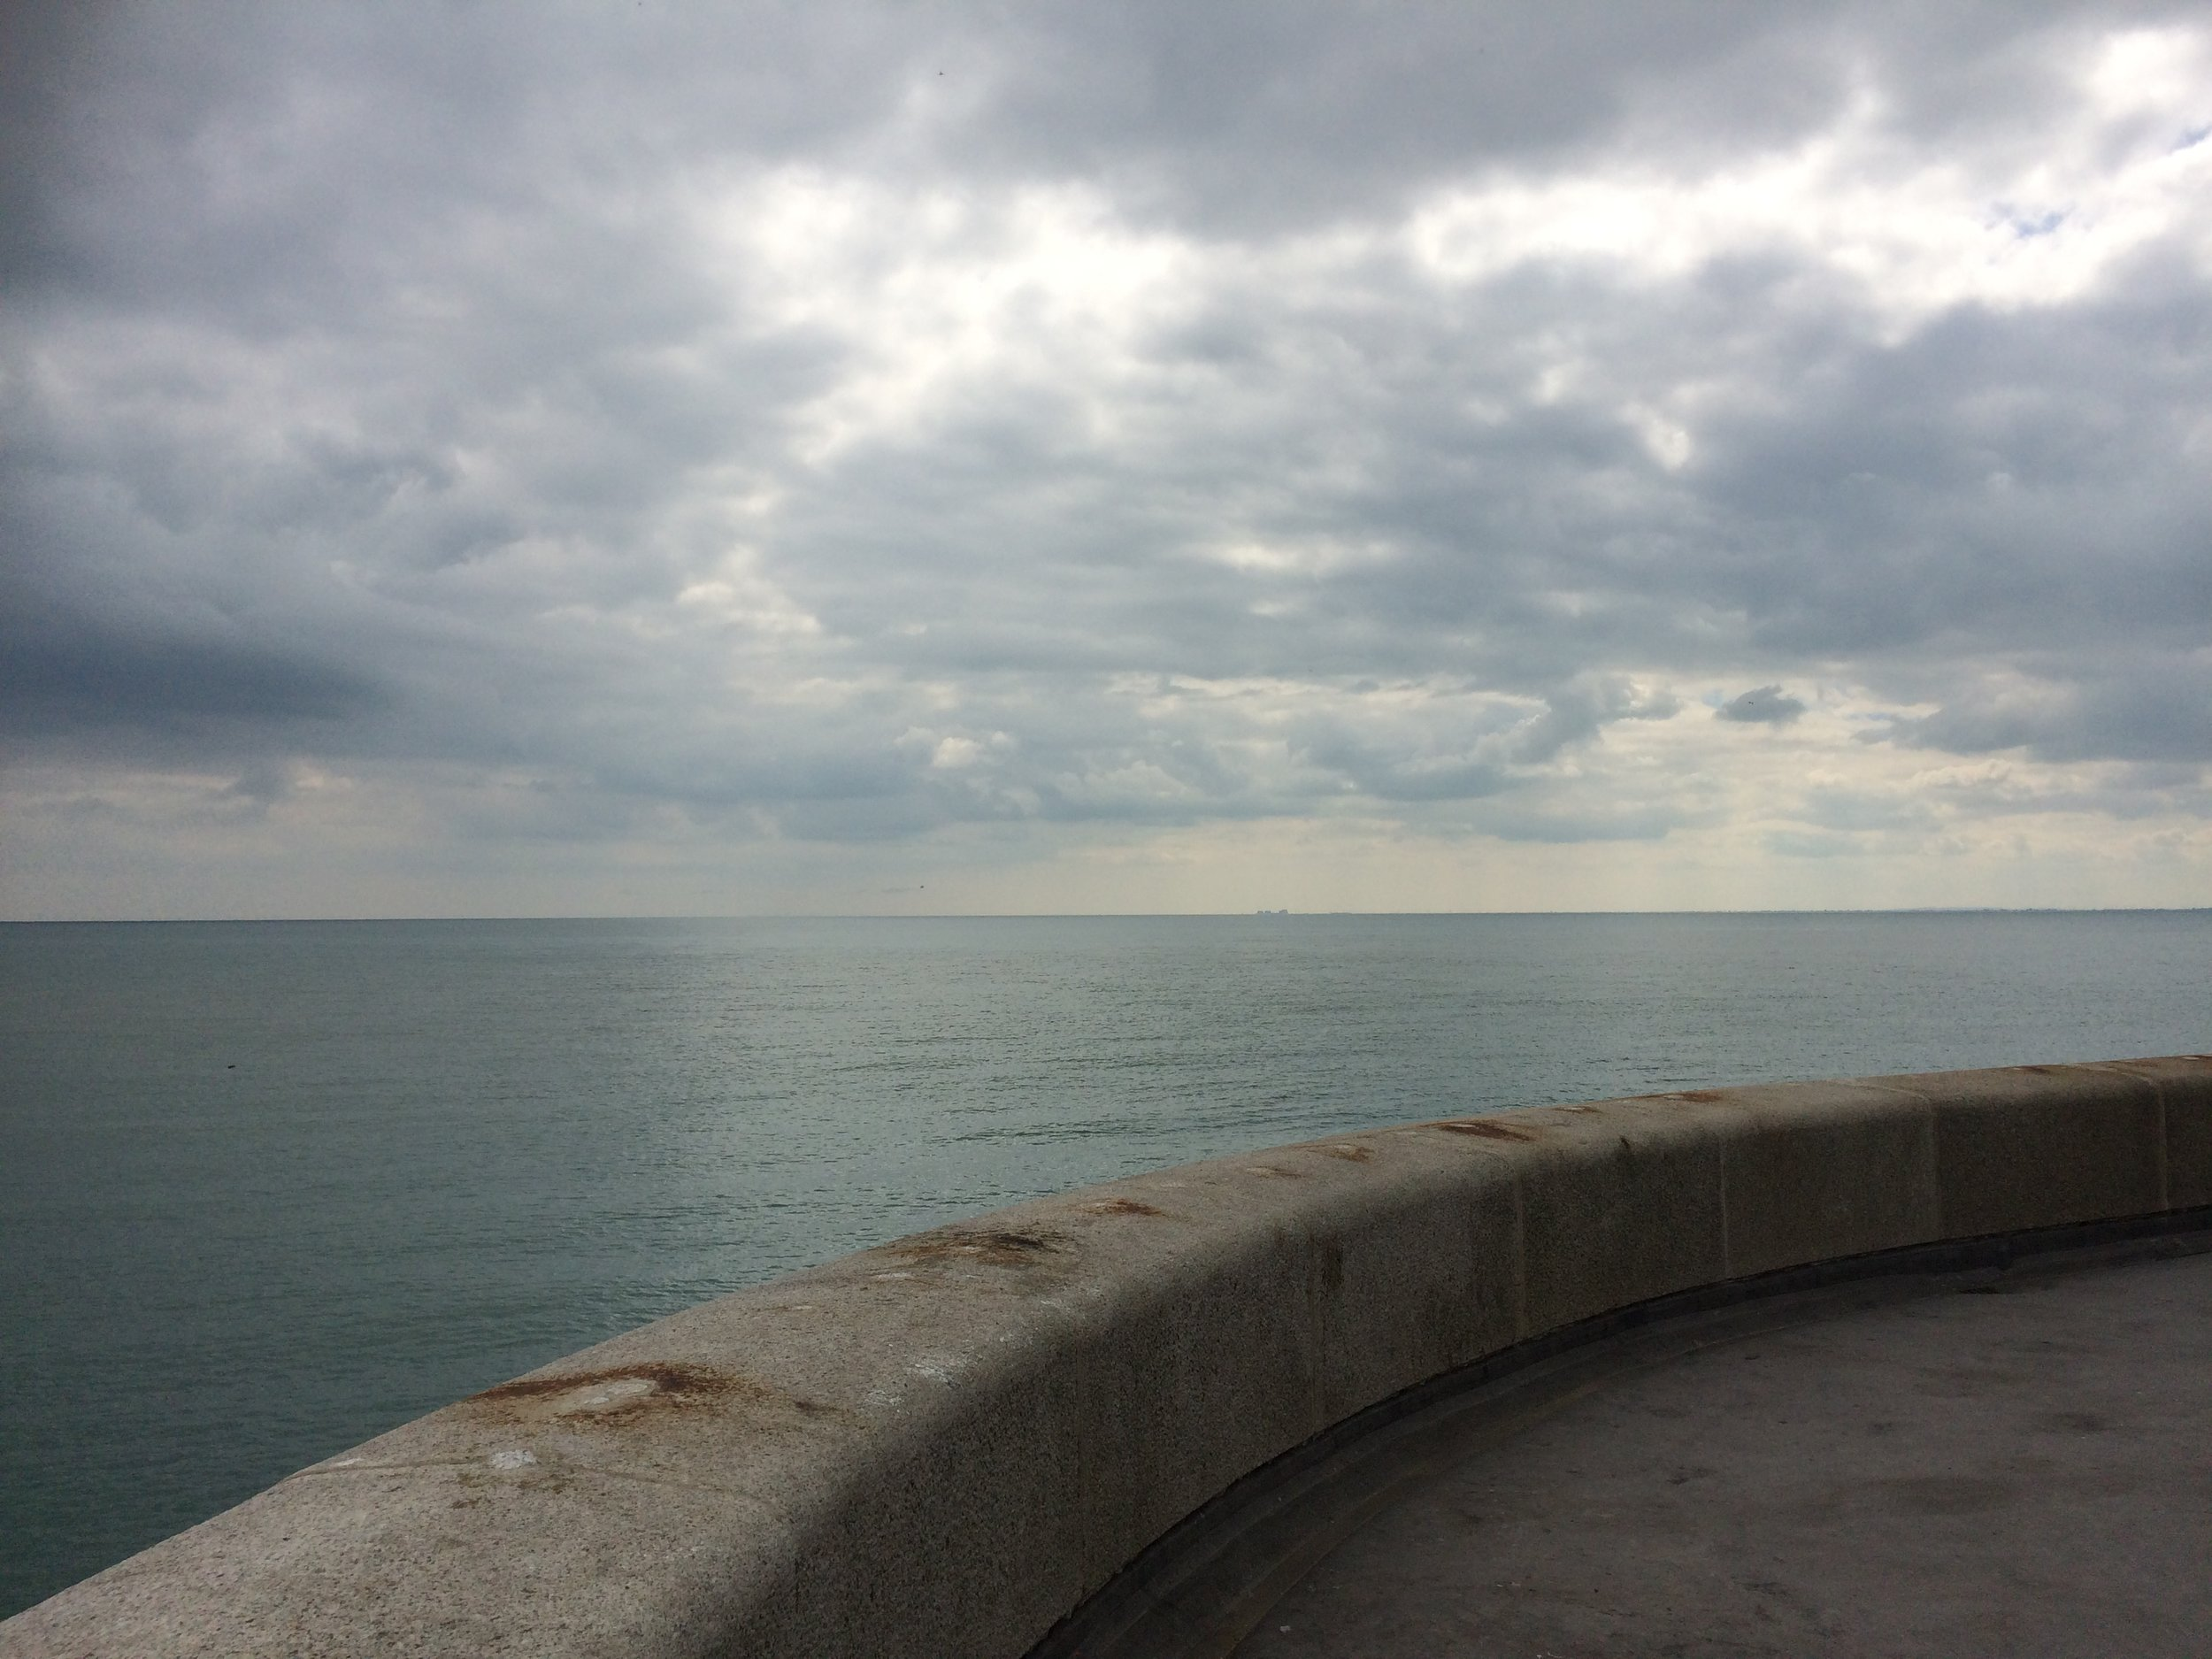 Gazing towards Dungeness from the arm that stretches out from Folkestone's harbour